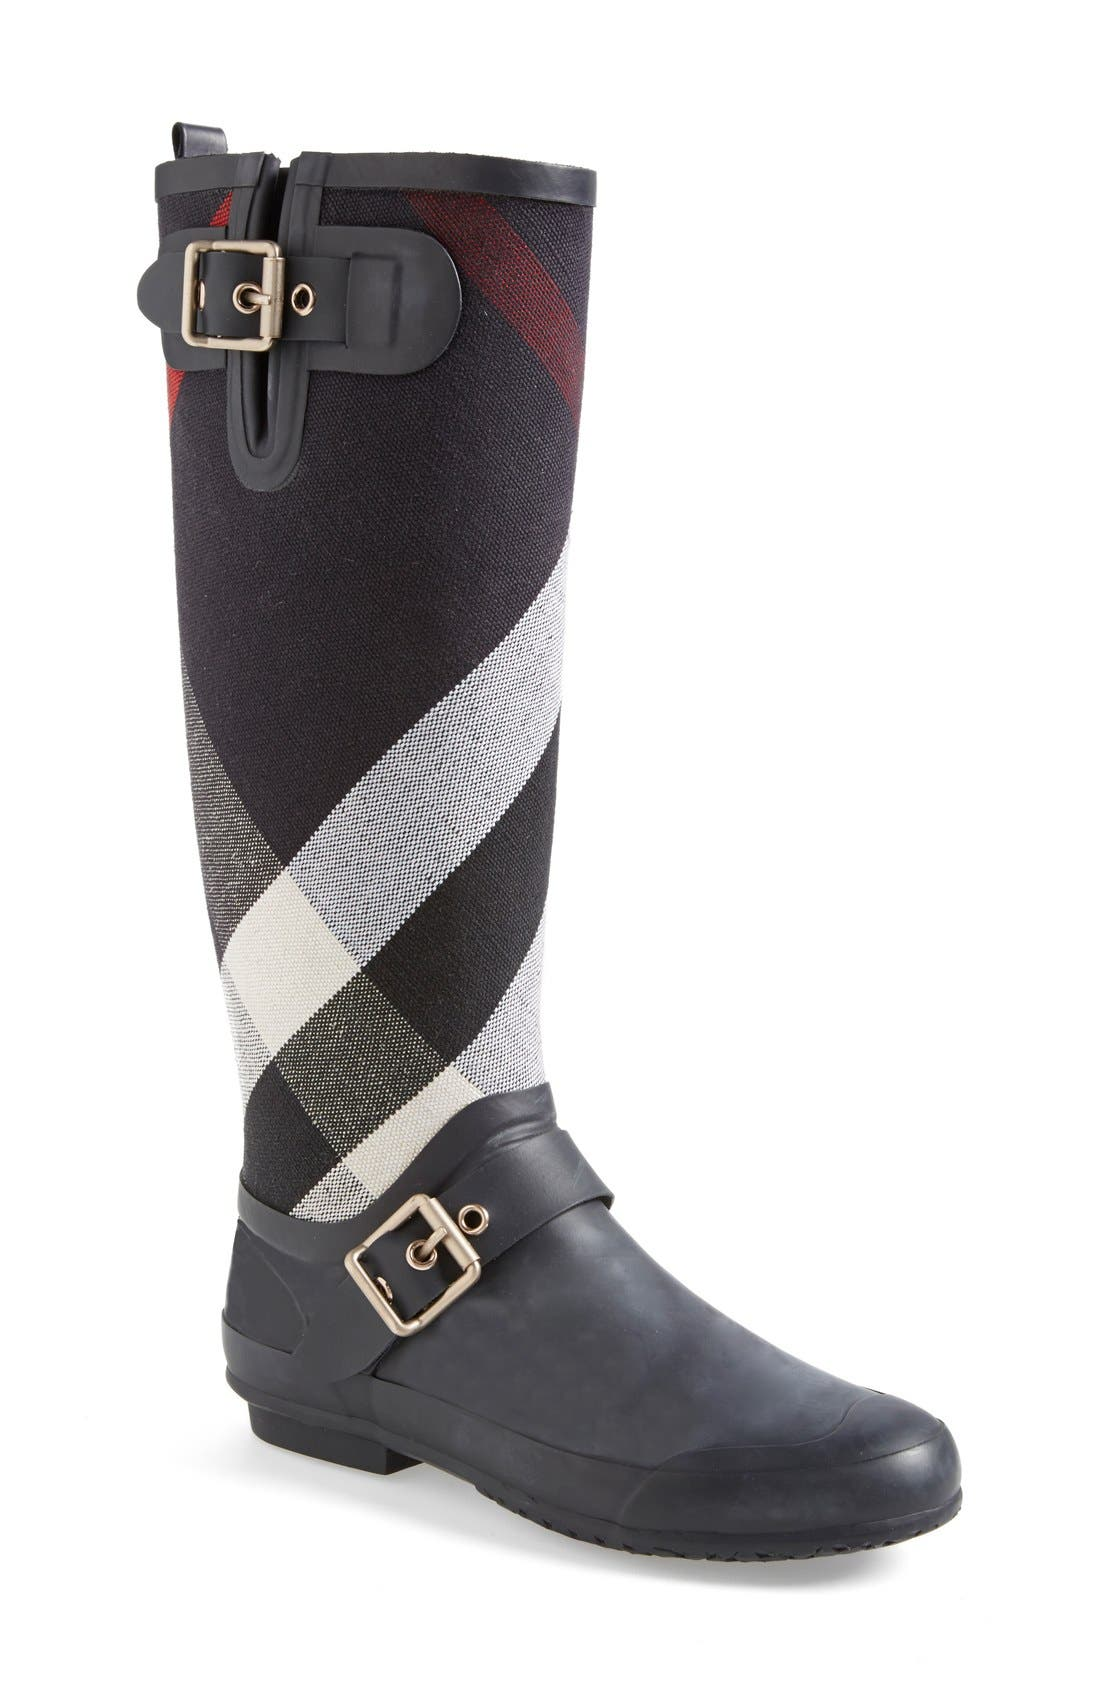 Main Image - Burberry 'Birkback' Rain Boot (Women) (Wide Calf)